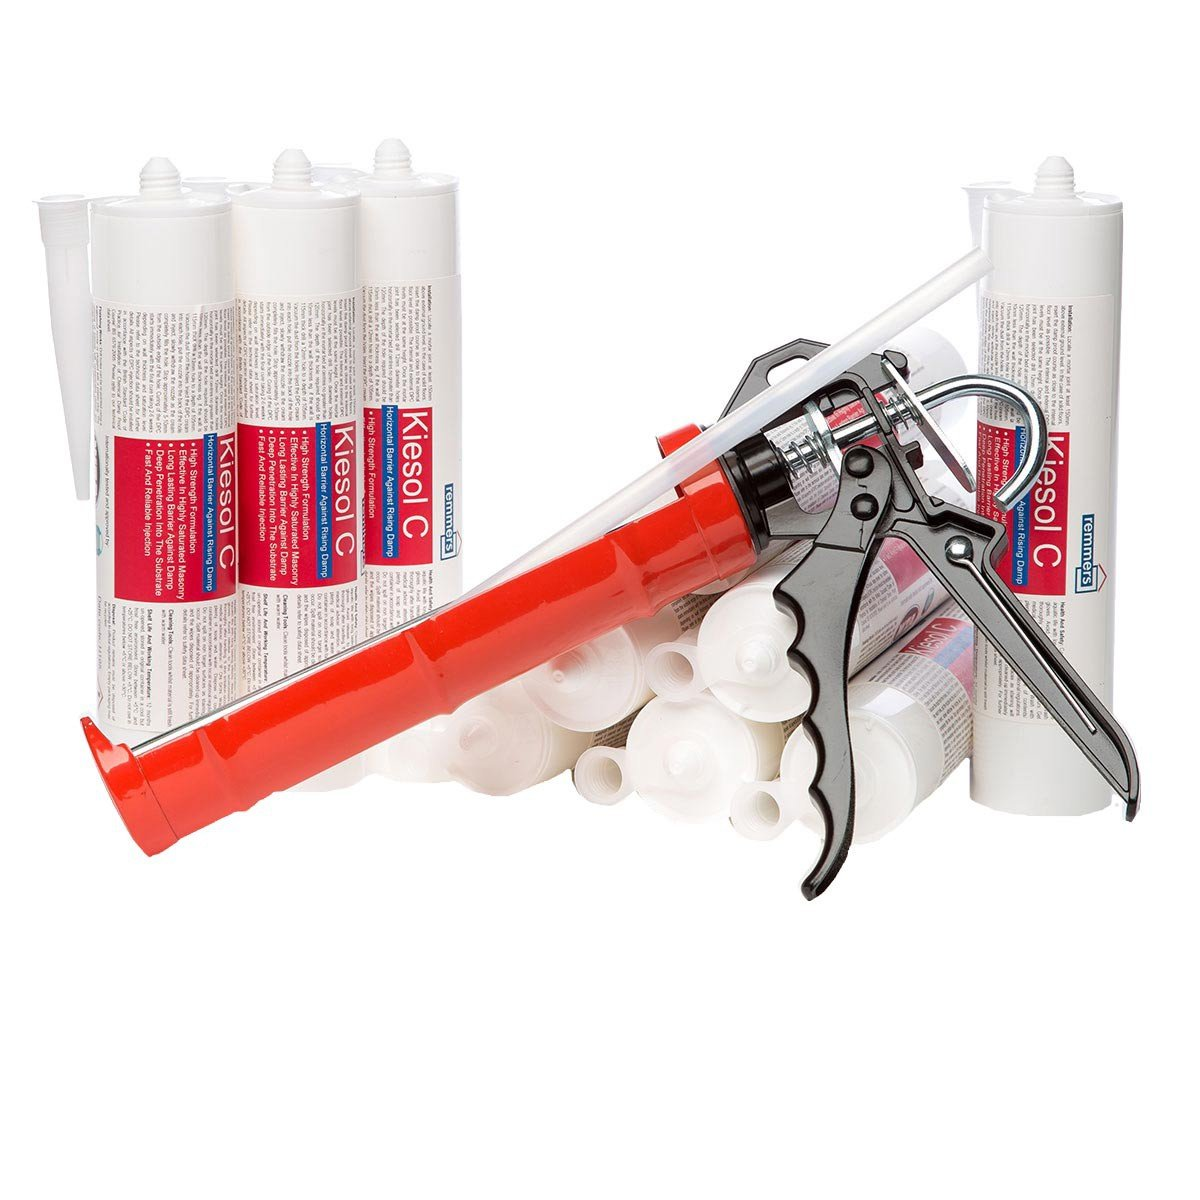 Kiesol C High Strength Damp Proof Course Injection Cream Kit (10 x 310ml cartridges + applicator + extension tube) - Rising Damp Treatment Remmers